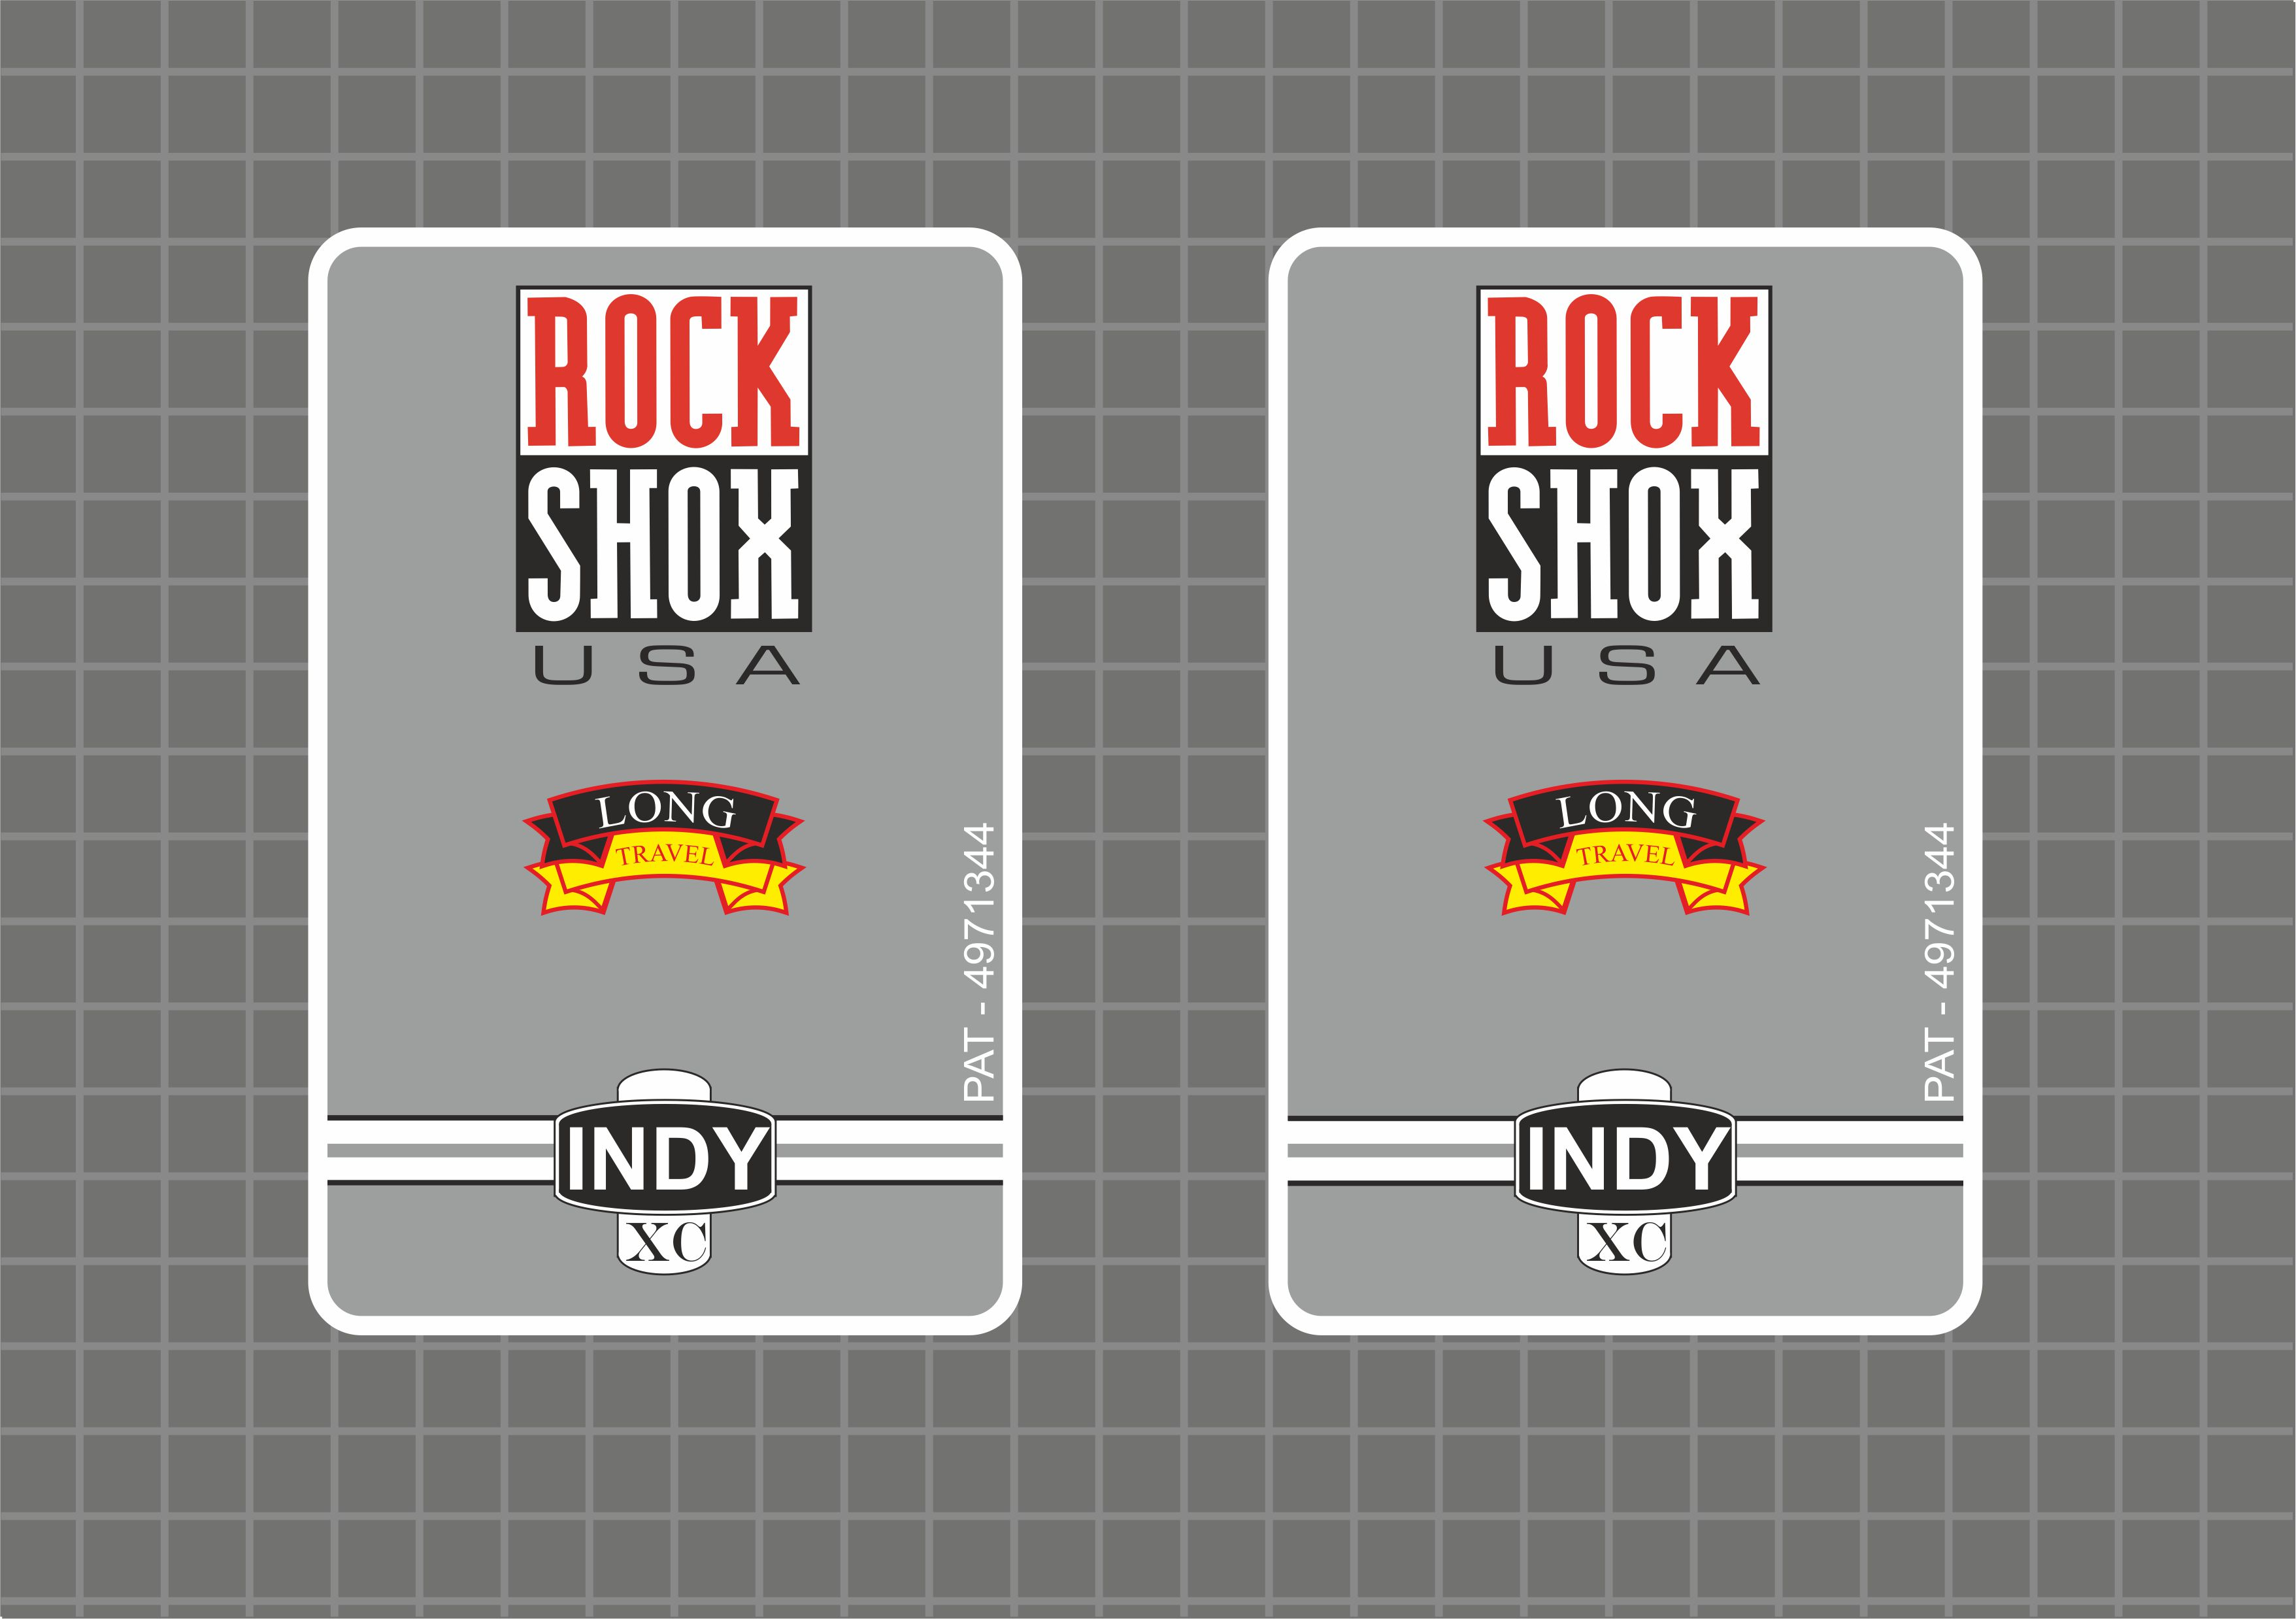 Rock Shox INDY C 1997 Forks Decals Stickers Graphic Set Vinyl Logo Adhesive